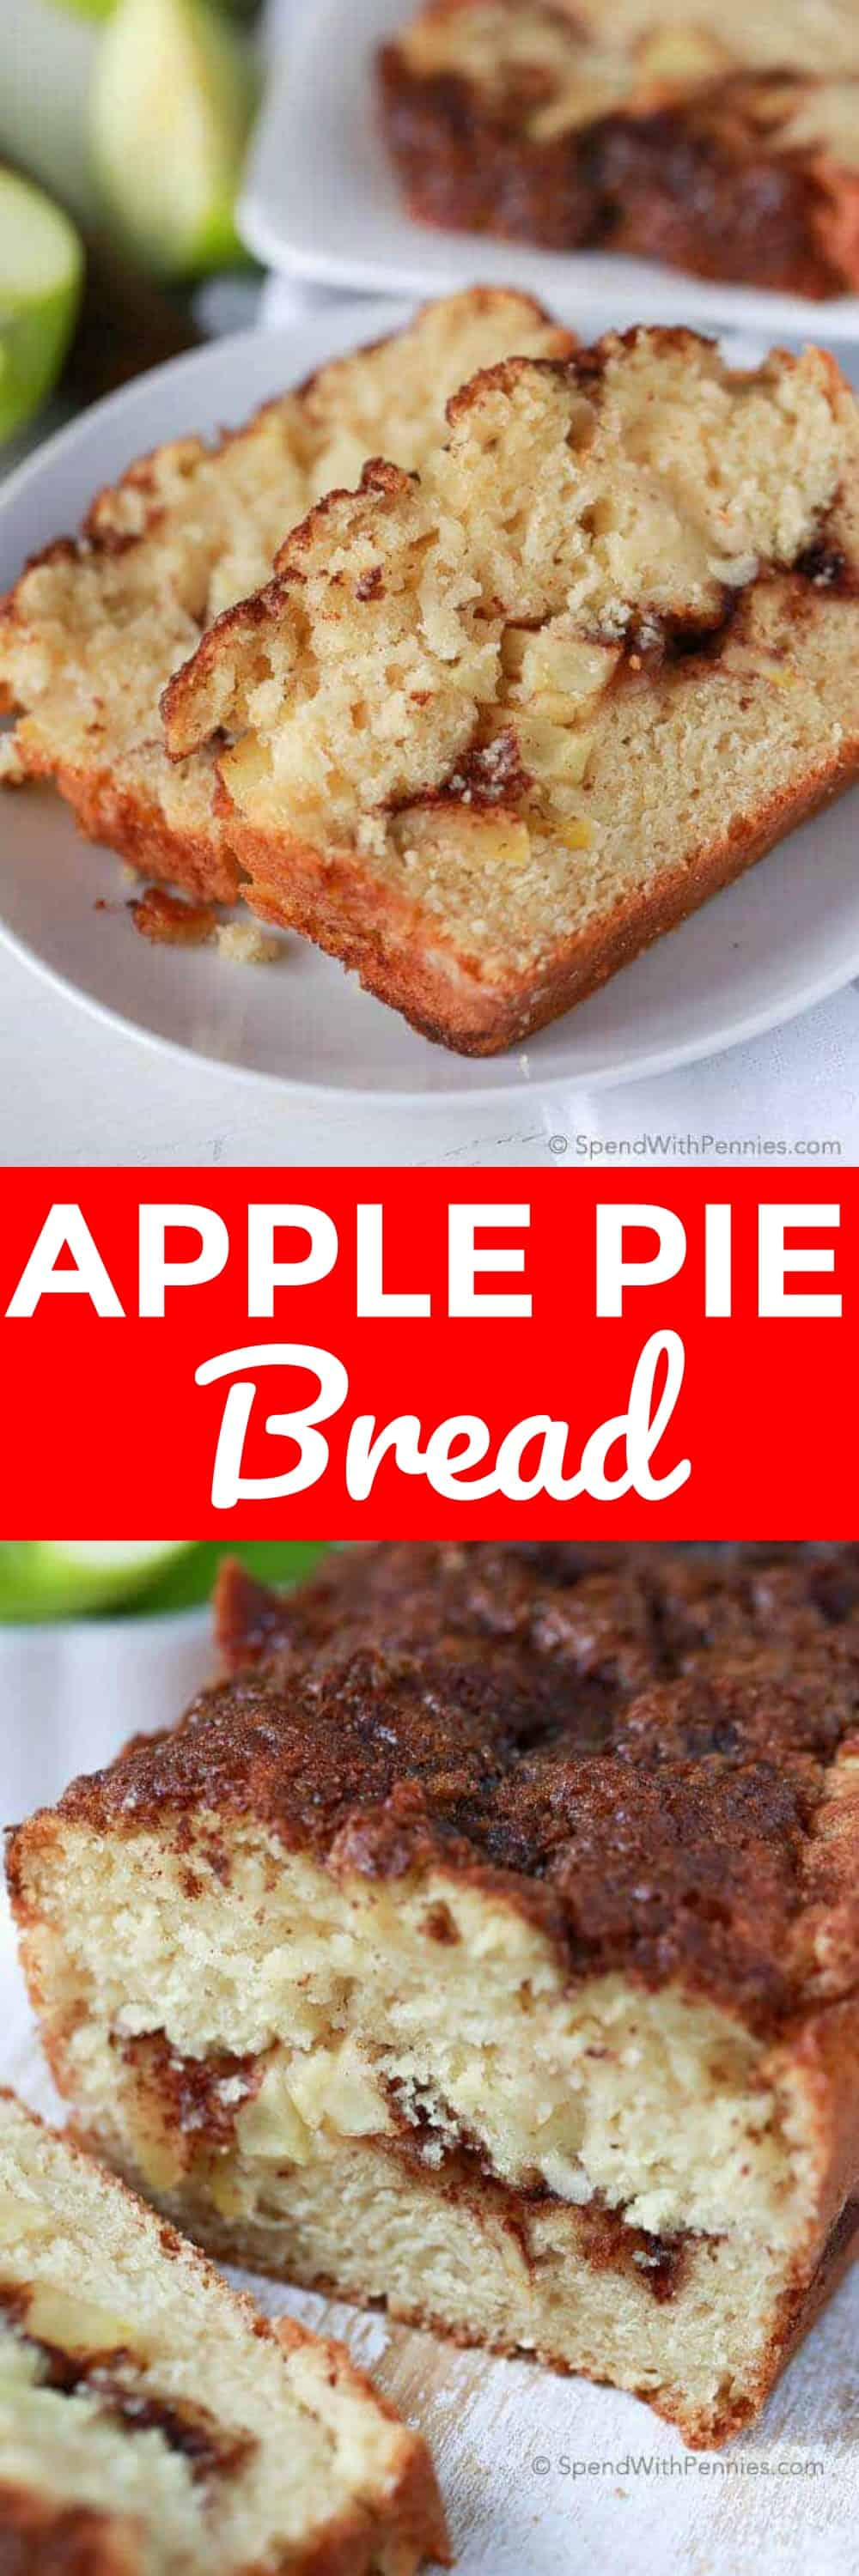 Warm Apple Pie Bread starts with a soft buttery base and loads of fresh apples mixed within and layered throughout with a cinnamon ribbon. It's all topped off with a sweet and crunchy cinnamon topping for the perfect apple pie inspired slice. #spendwithpennies #easyrecipe #easybread #applepie #quickbread #applerecipe